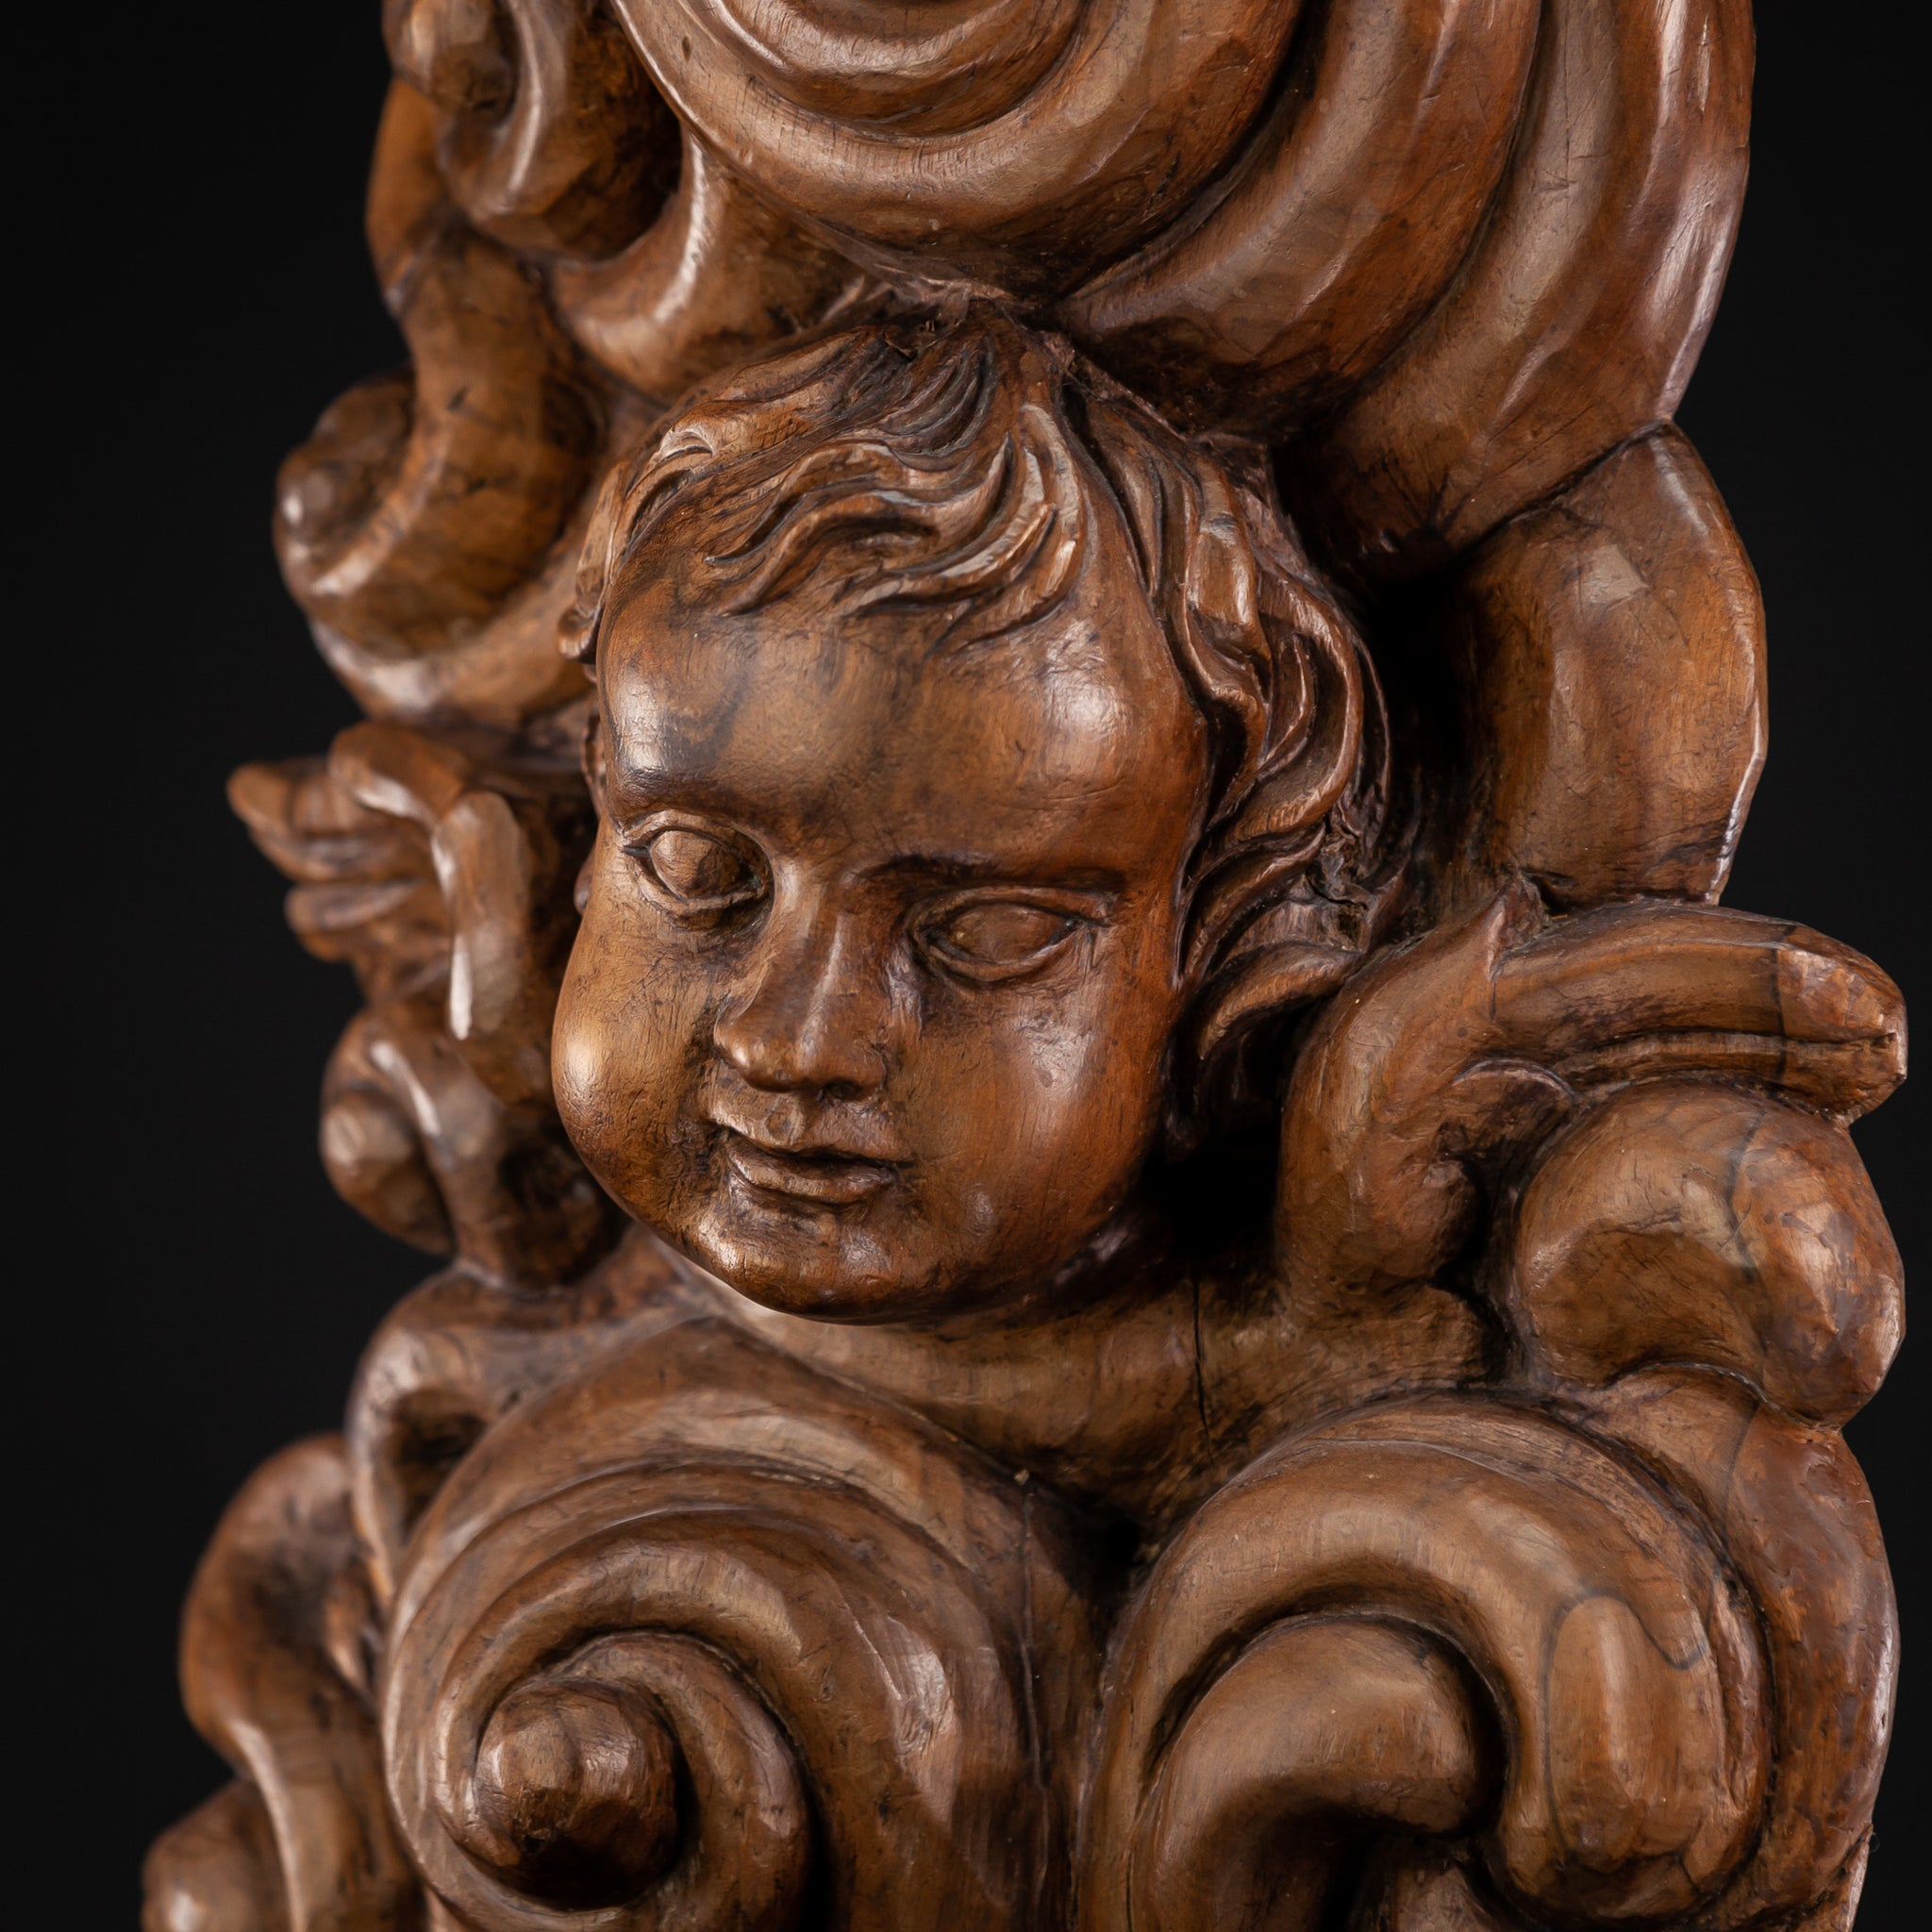 Angel Sculpture 1700s Wooden Figure 31''